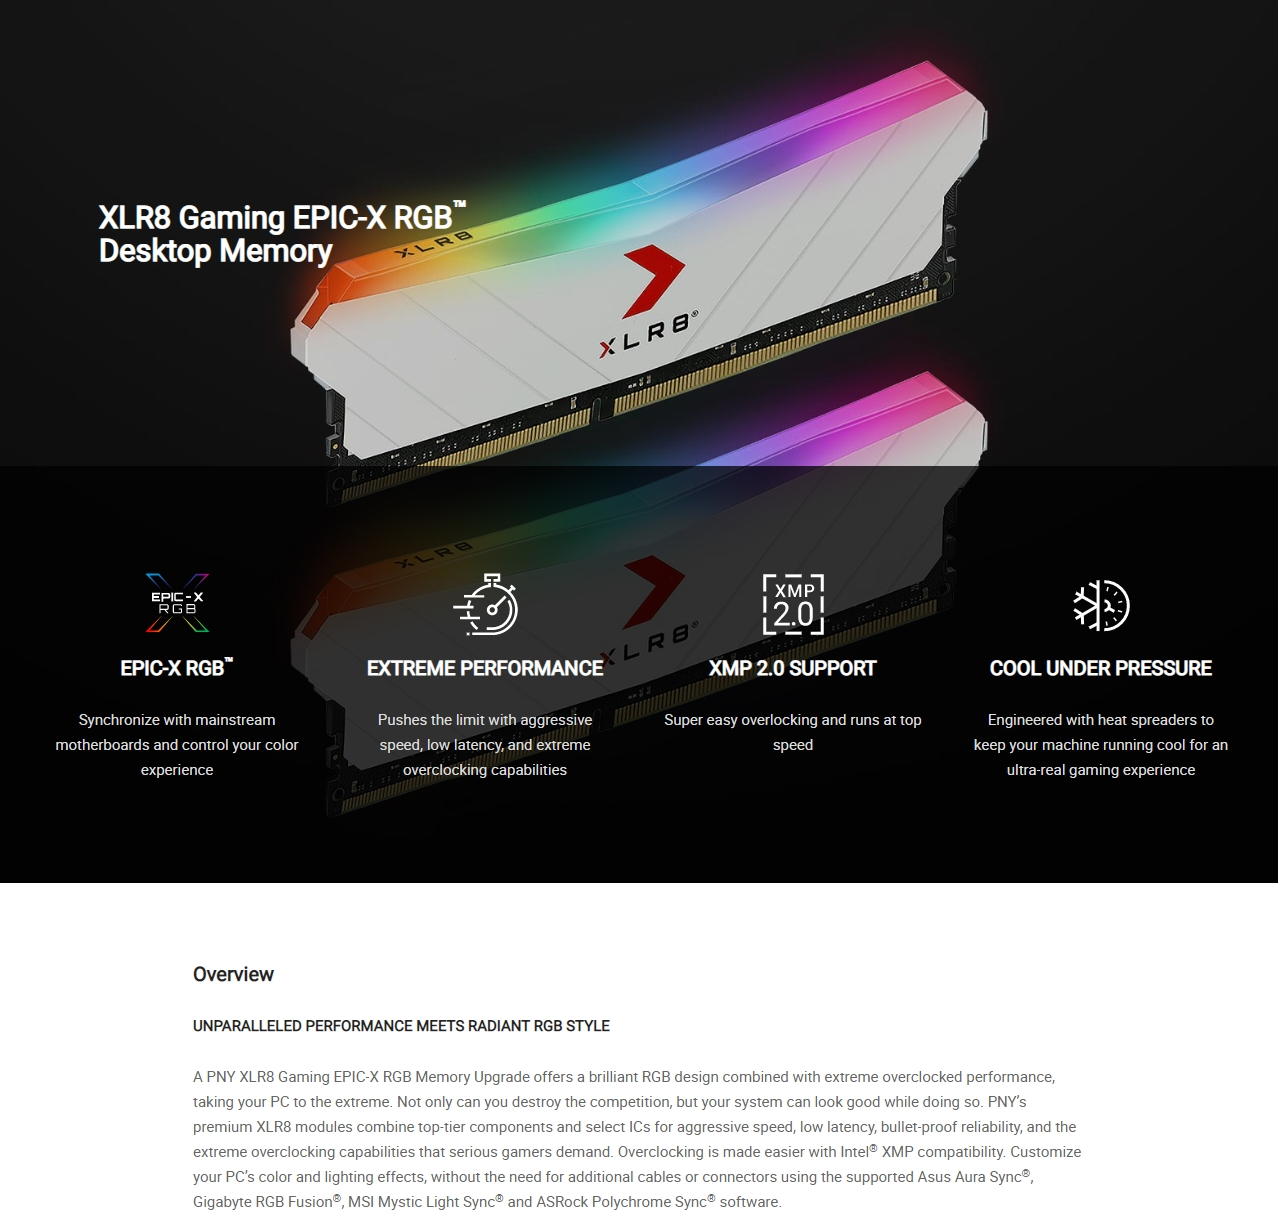 A large marketing image providing additional information about the product PNY XLR8 32GB (2x16GB) EPIC-X RGB Gaming DDR4 C16 3200Mhz - White Edition - Additional alt info not provided